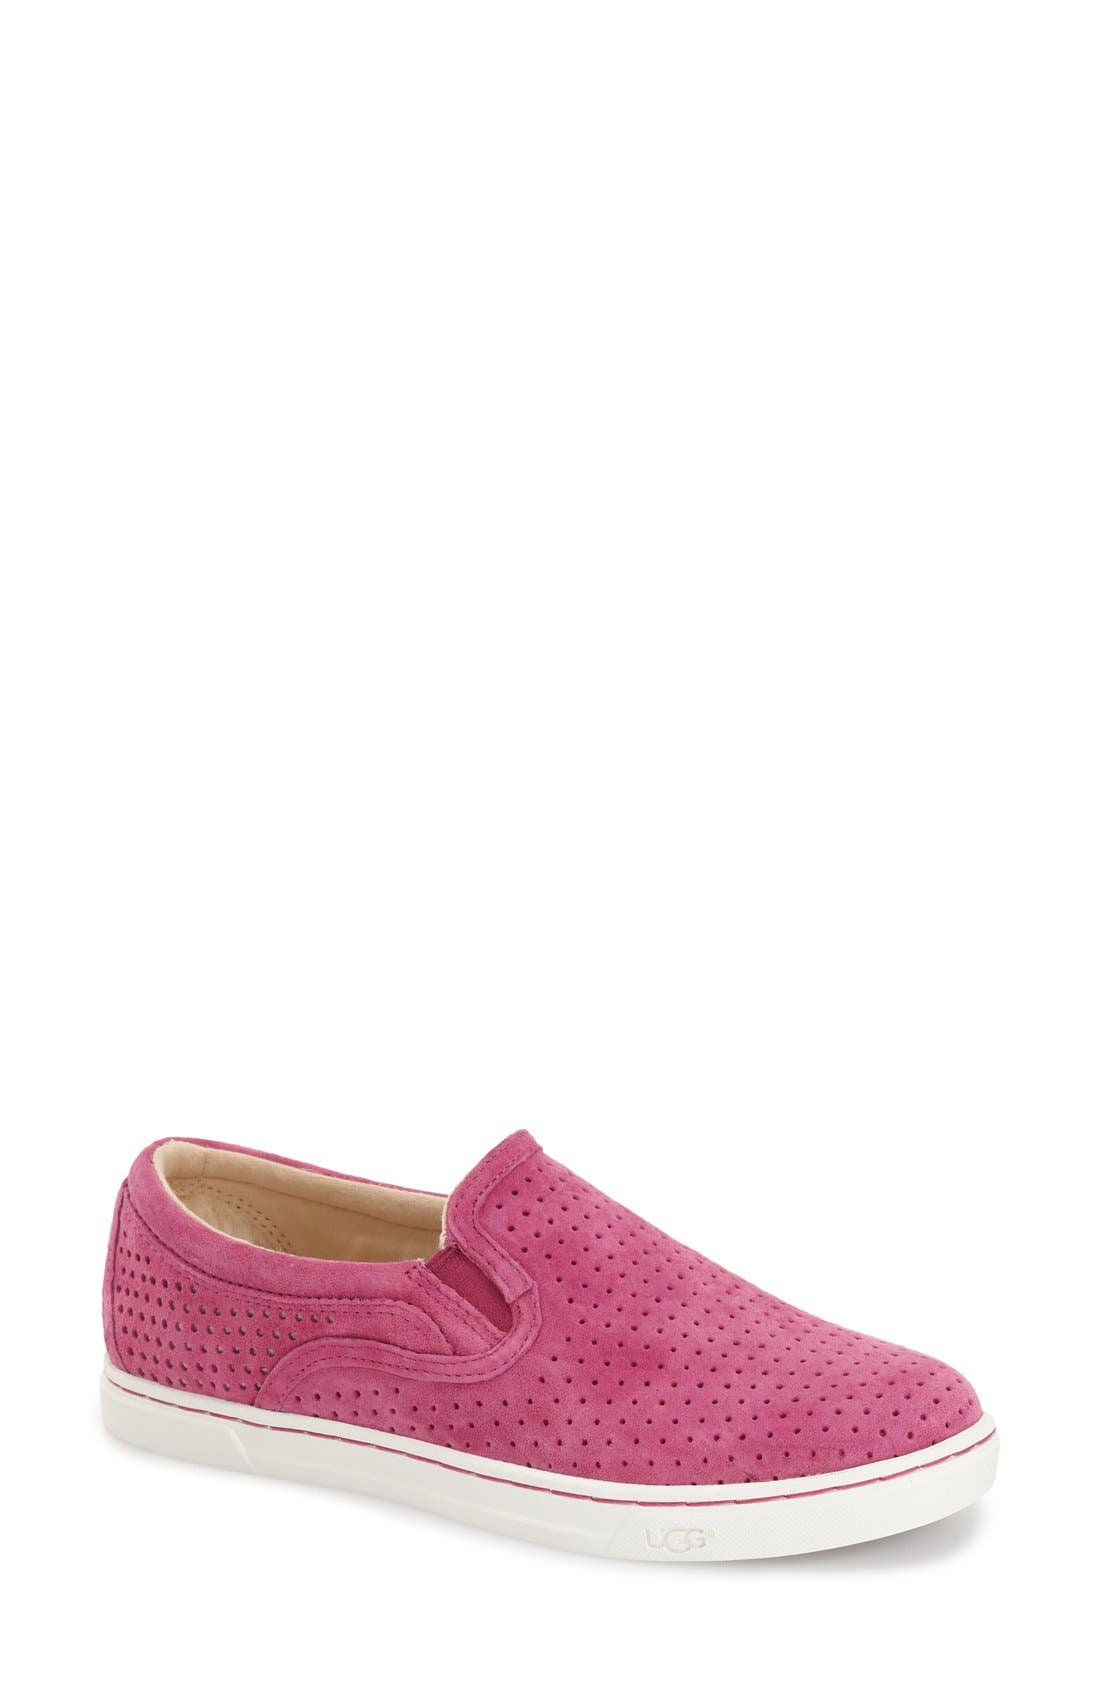 'Fierce Geo' Perforated Slip-On Sneaker,                             Main thumbnail 3, color,